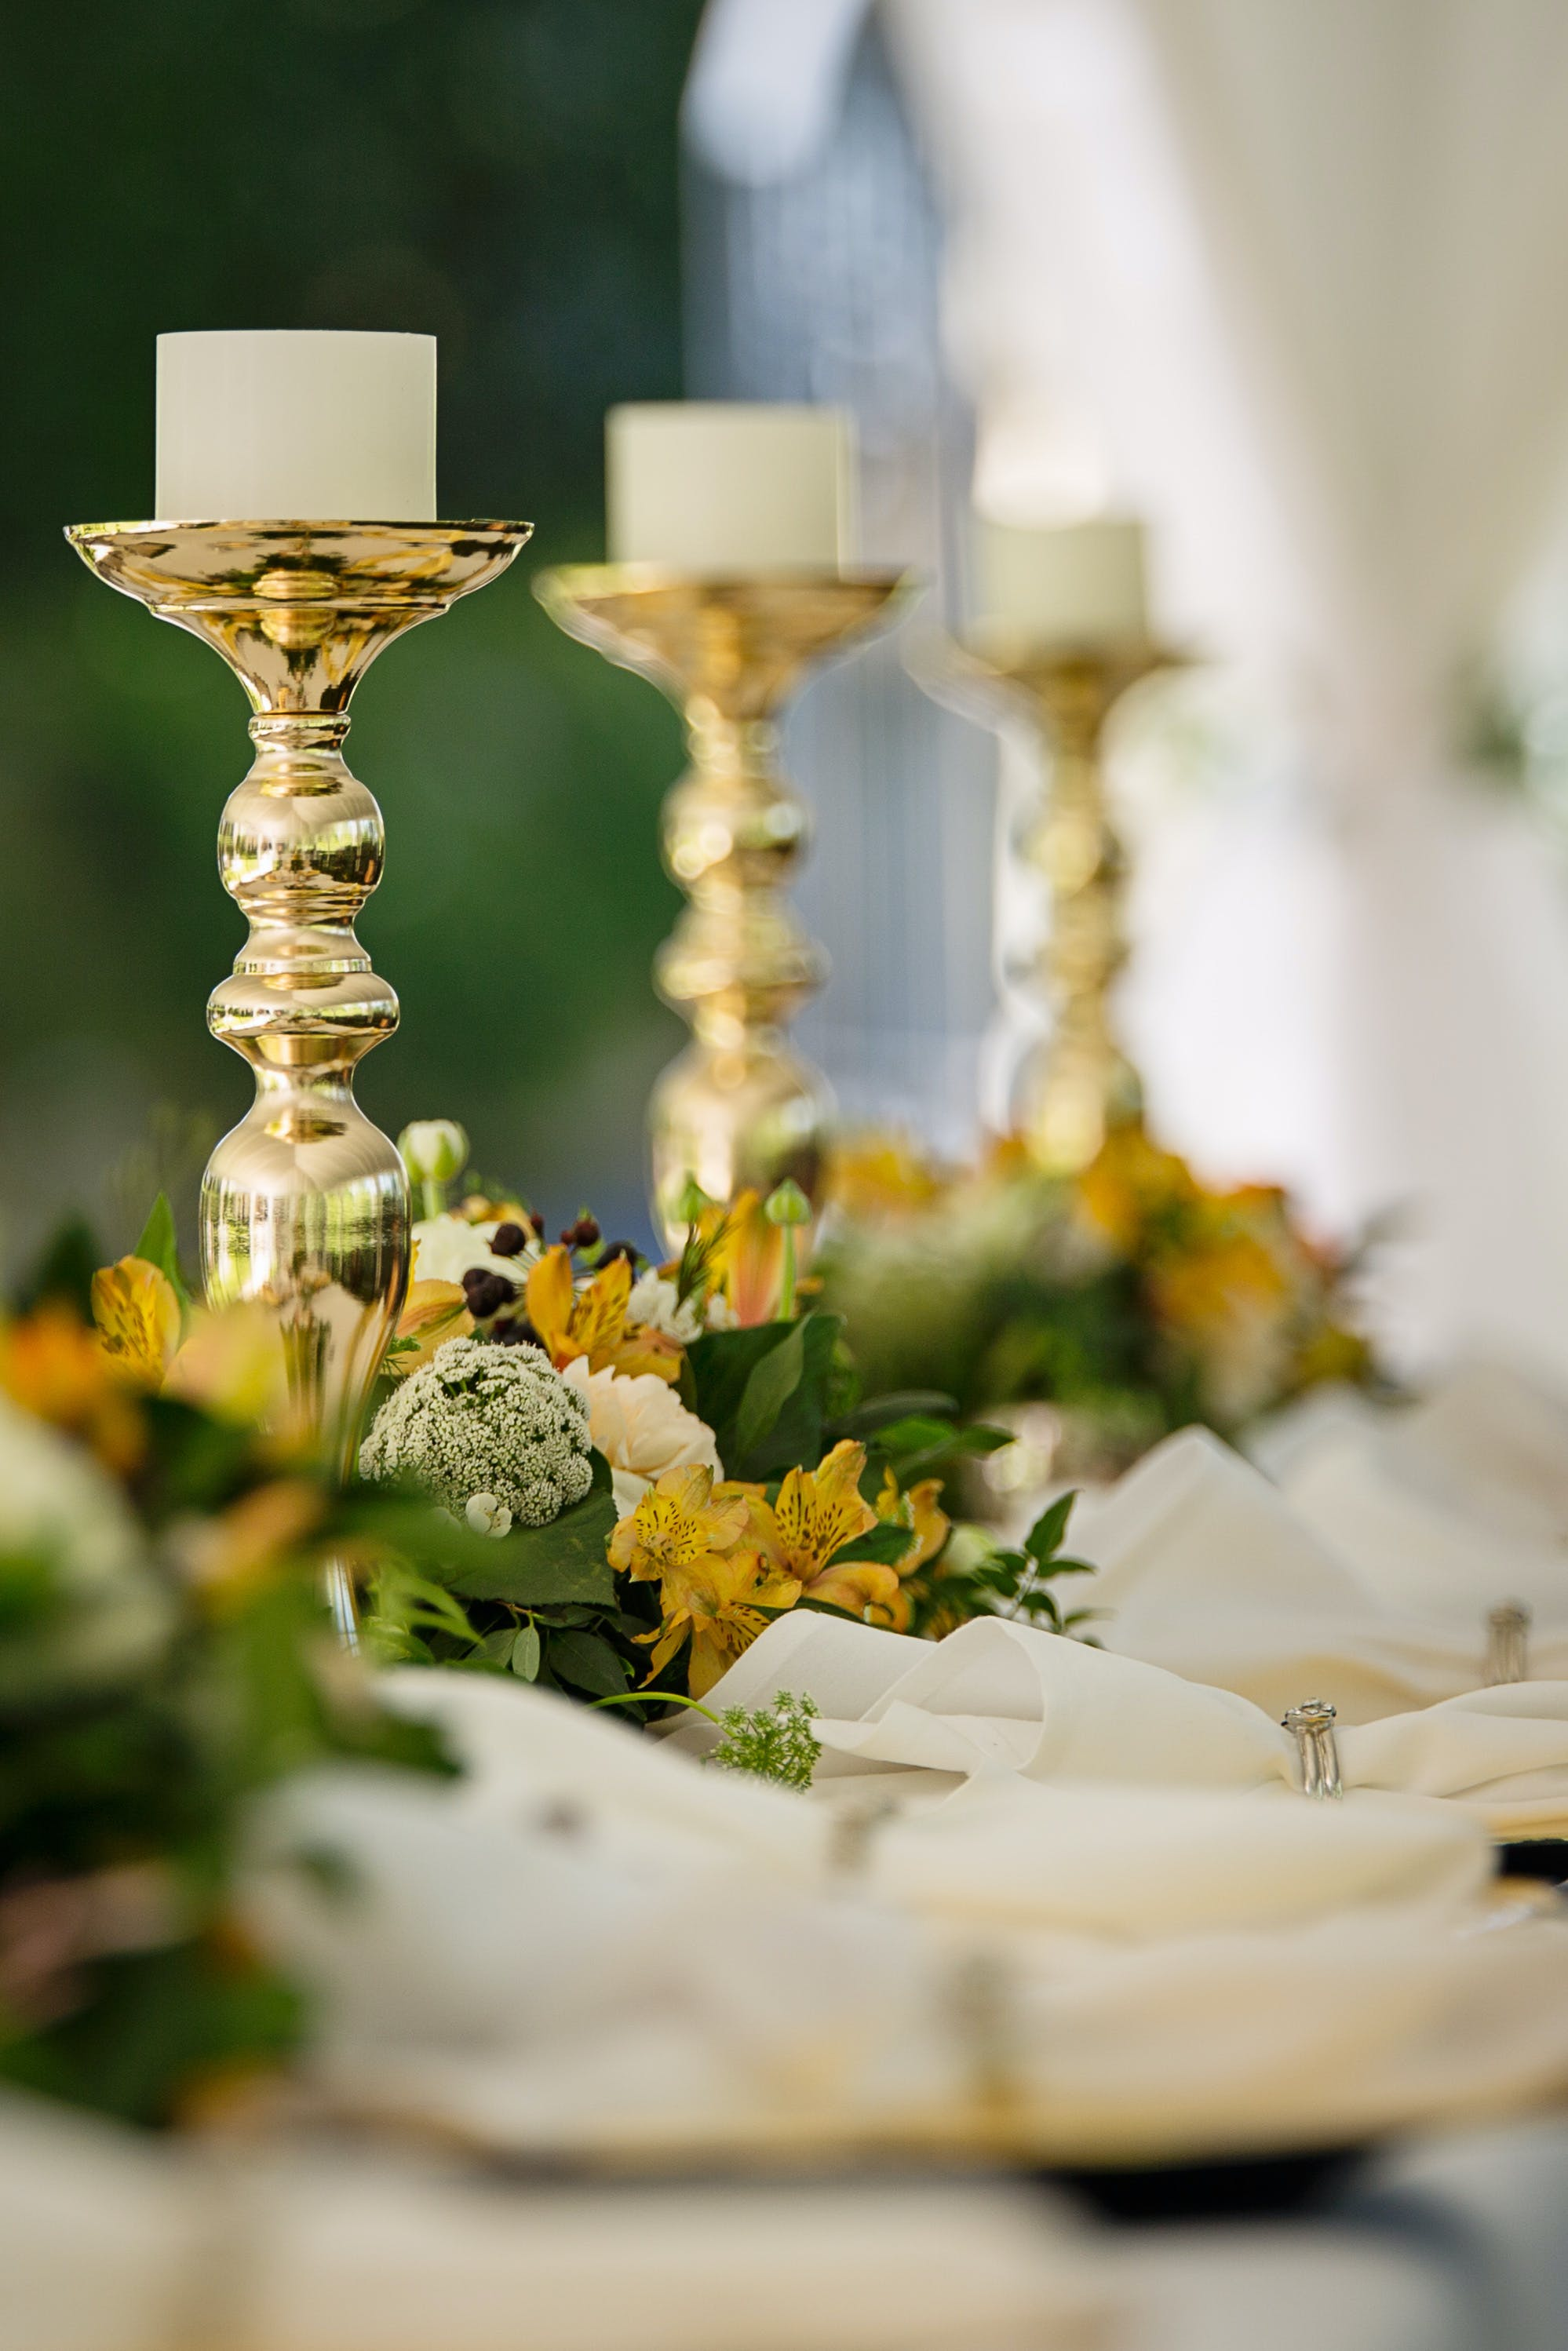 Selective Focus Photography of Gold Candlestick on Table